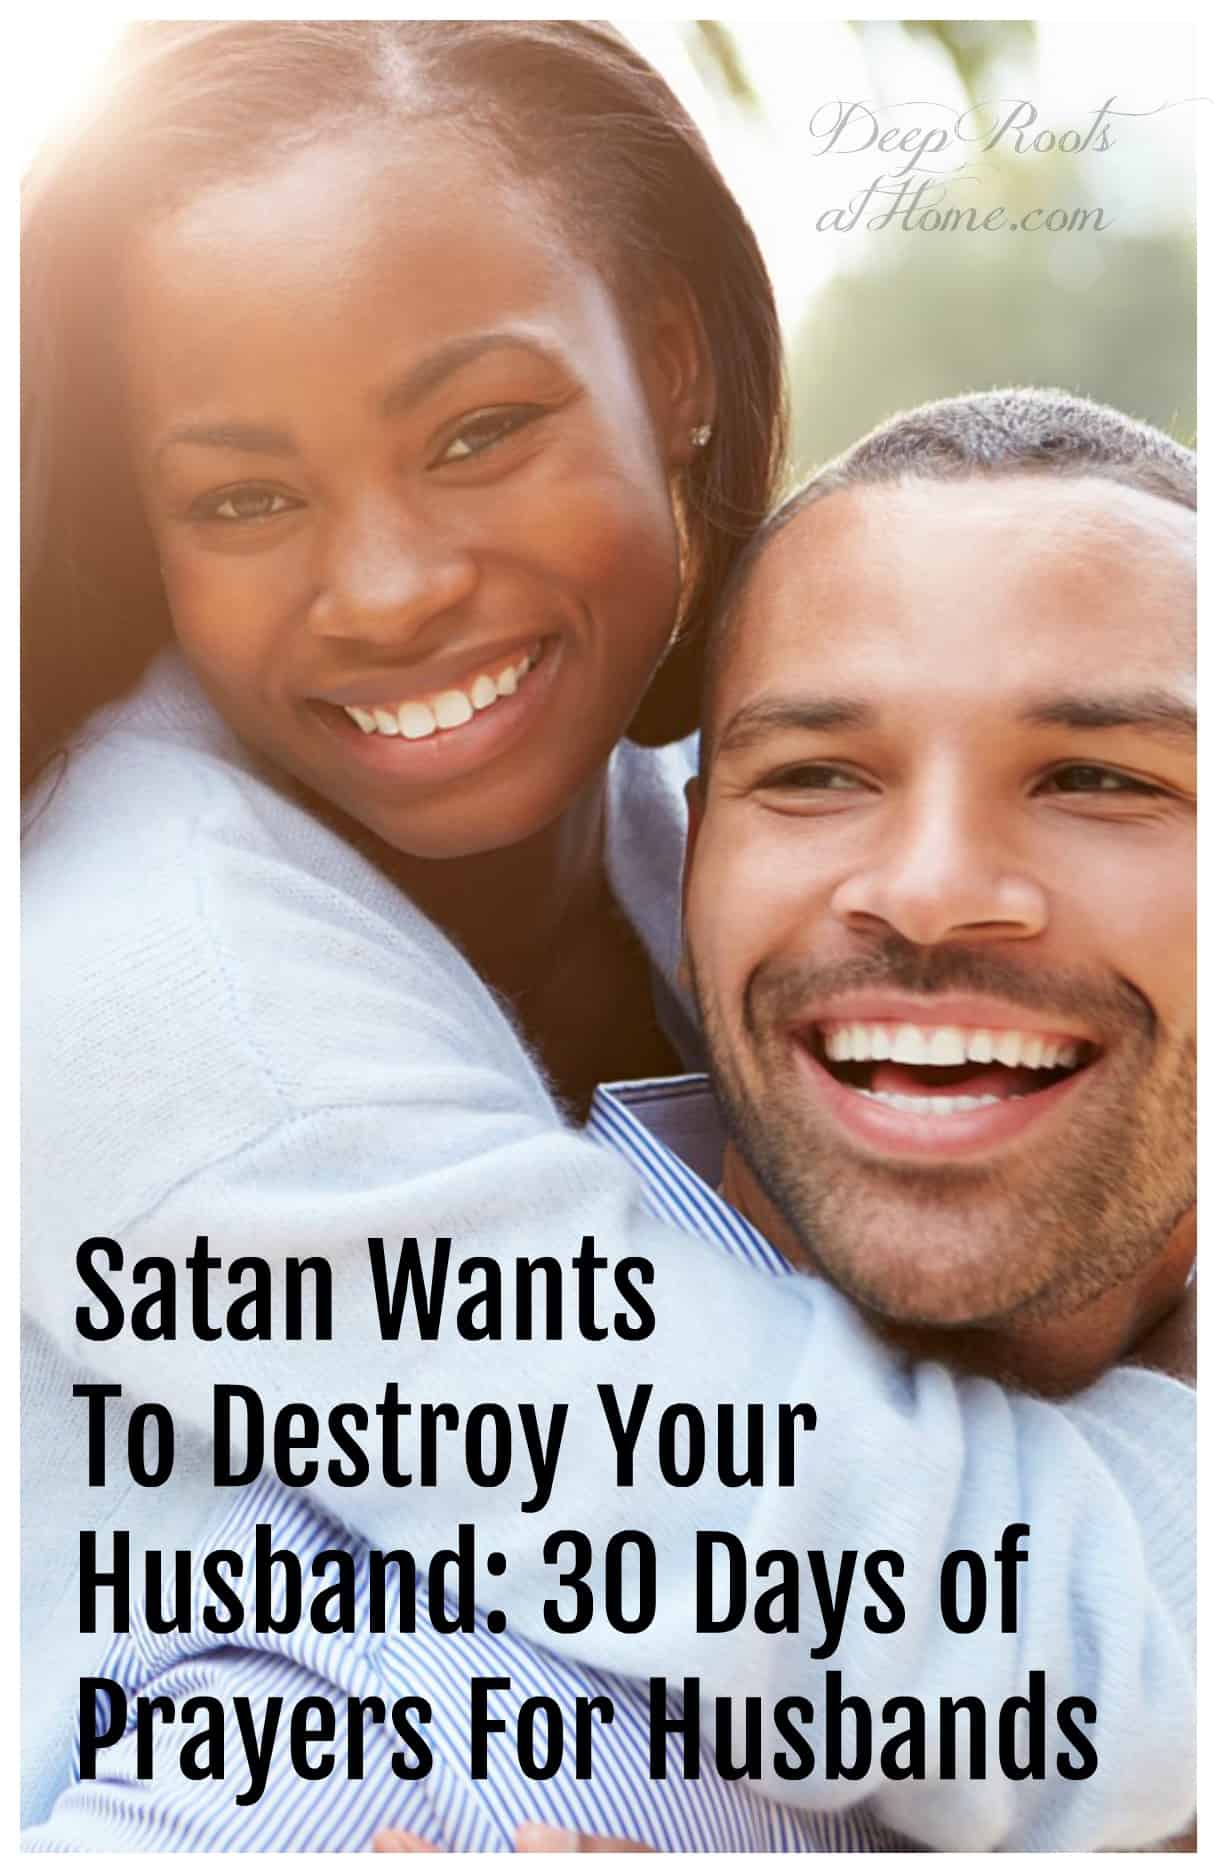 Satan Wants To Destroy Your Husband: 30 Days of Prayers For Husbands. An African American couple laughing together and very close.